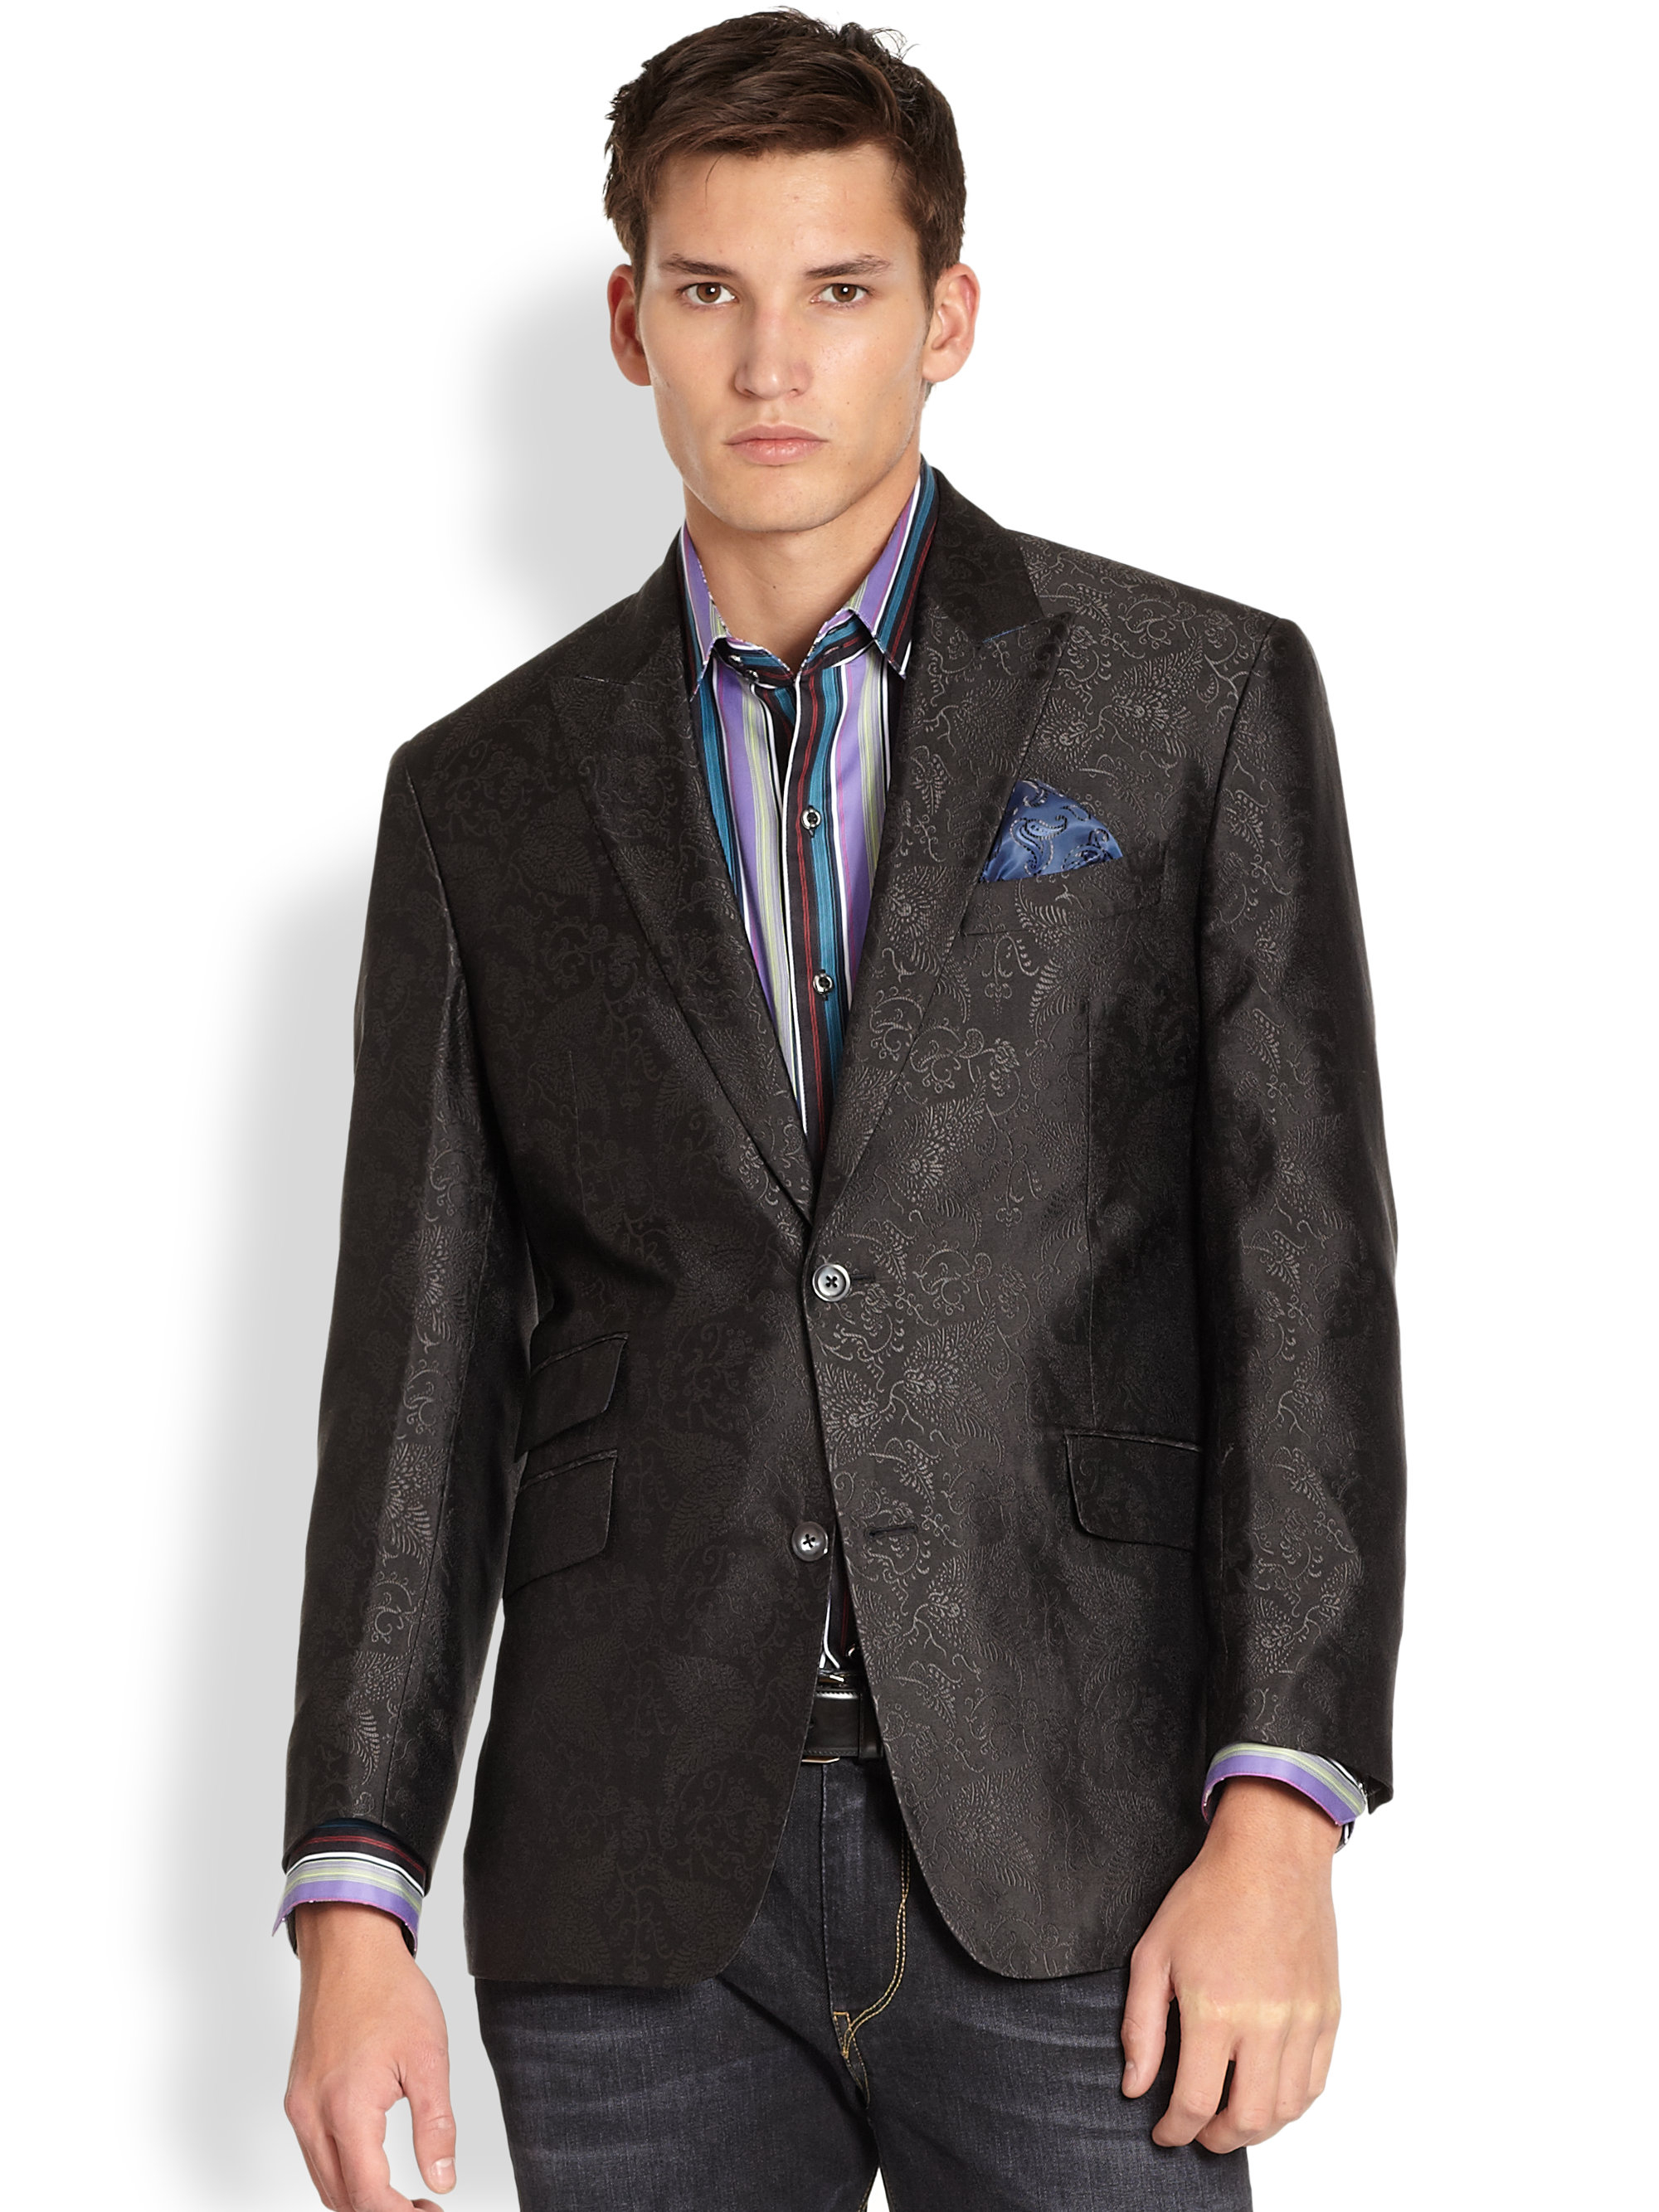 You searched for: mens silk blazer! Etsy is the home to thousands of handmade, vintage, and one-of-a-kind products and gifts related to your search. No matter what you're looking for or where you are in the world, our global marketplace of sellers can help you find unique and affordable options. Let's get started!